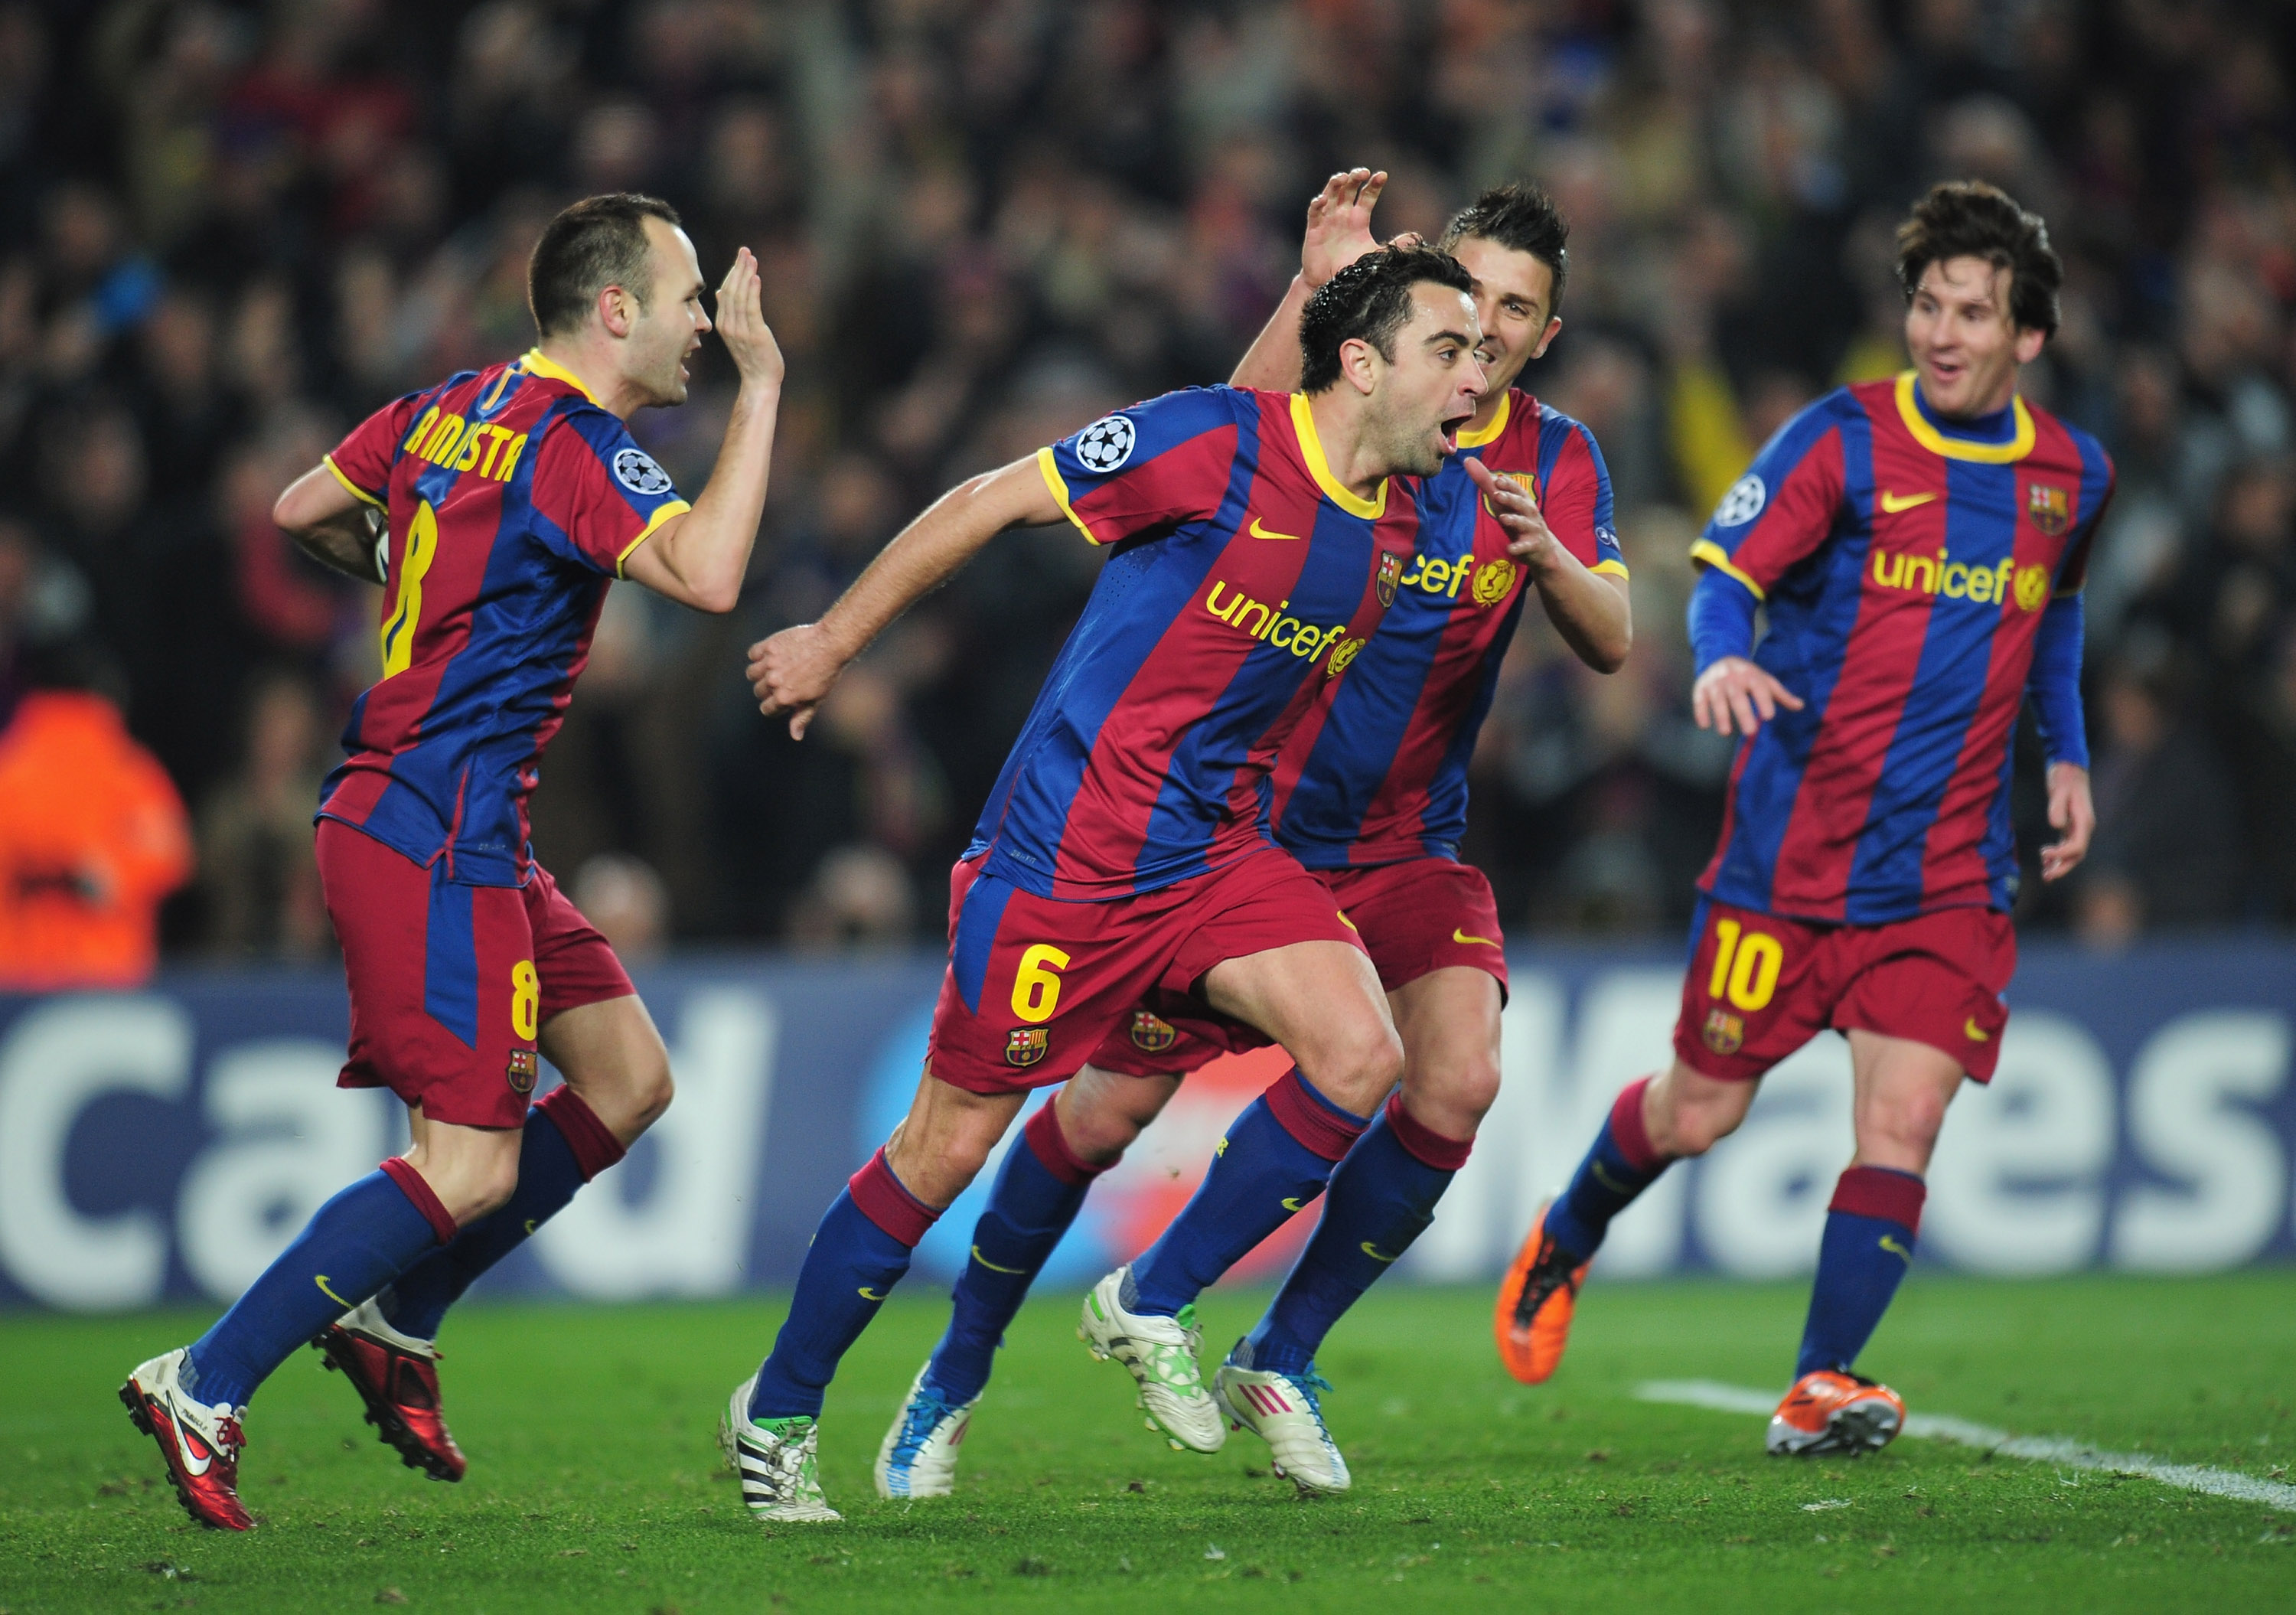 BARCELONA, SPAIN - MARCH 08:  Xavi Hernandez of Barcelona celebrates with team-mates David Villa and Andres Iniesta during the UEFA Champions League round of 16 second leg match between Barcelona and Arsenal at the Nou Camp Stadium on March 8, 2011 in Bar